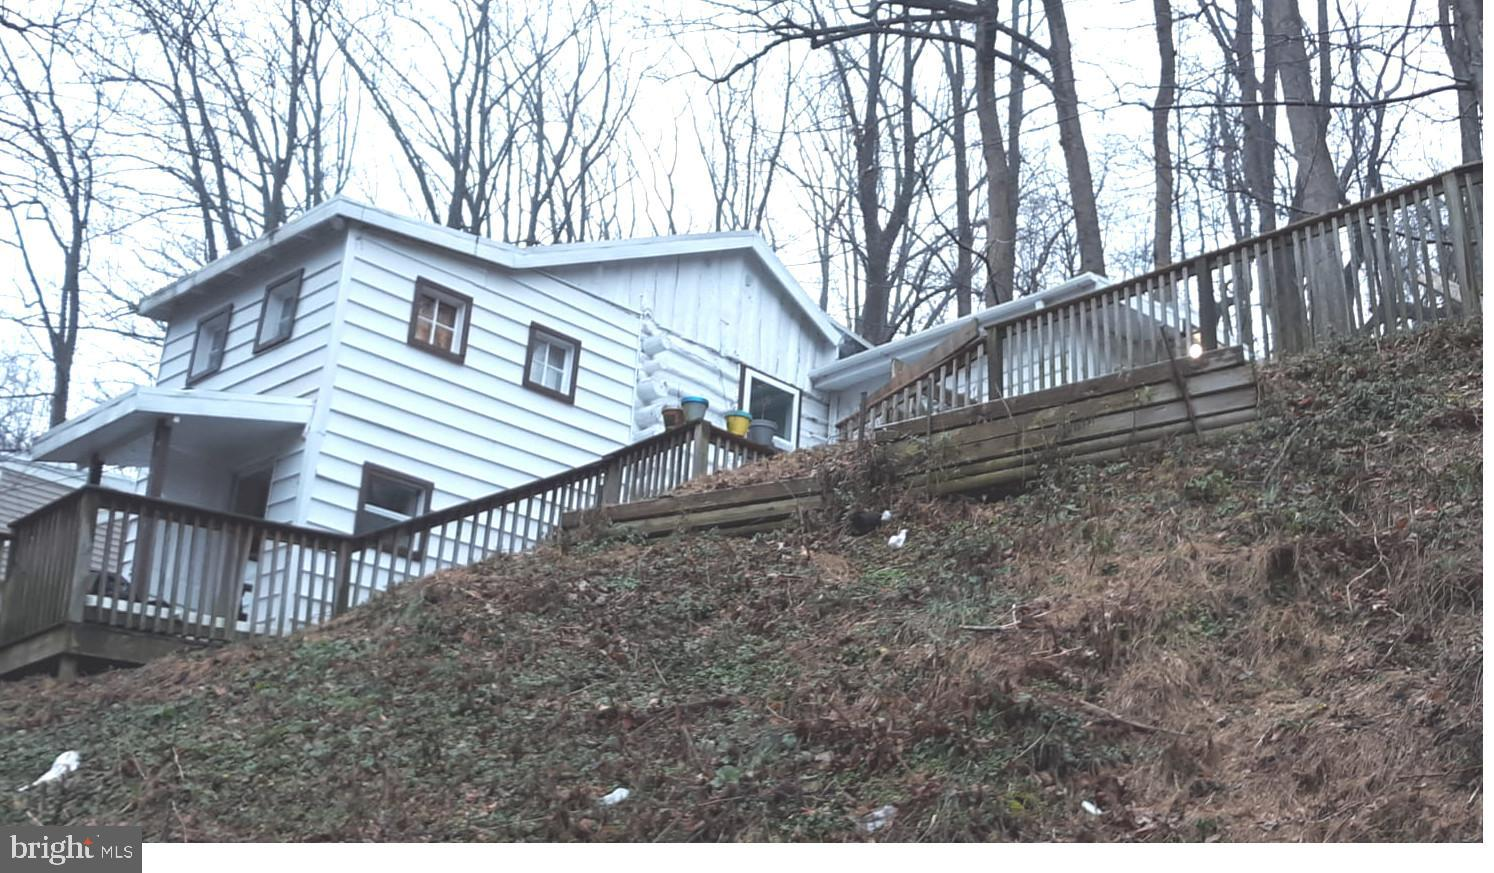 Low cost one story living near the river! Starter home or vacation getaway!  Newer kitchen and bathroom, new carpeting, off street parking, one year home warranty, fenced yard, low taxes. You own the land, .6 acres, washer, dryer refrigerator included.